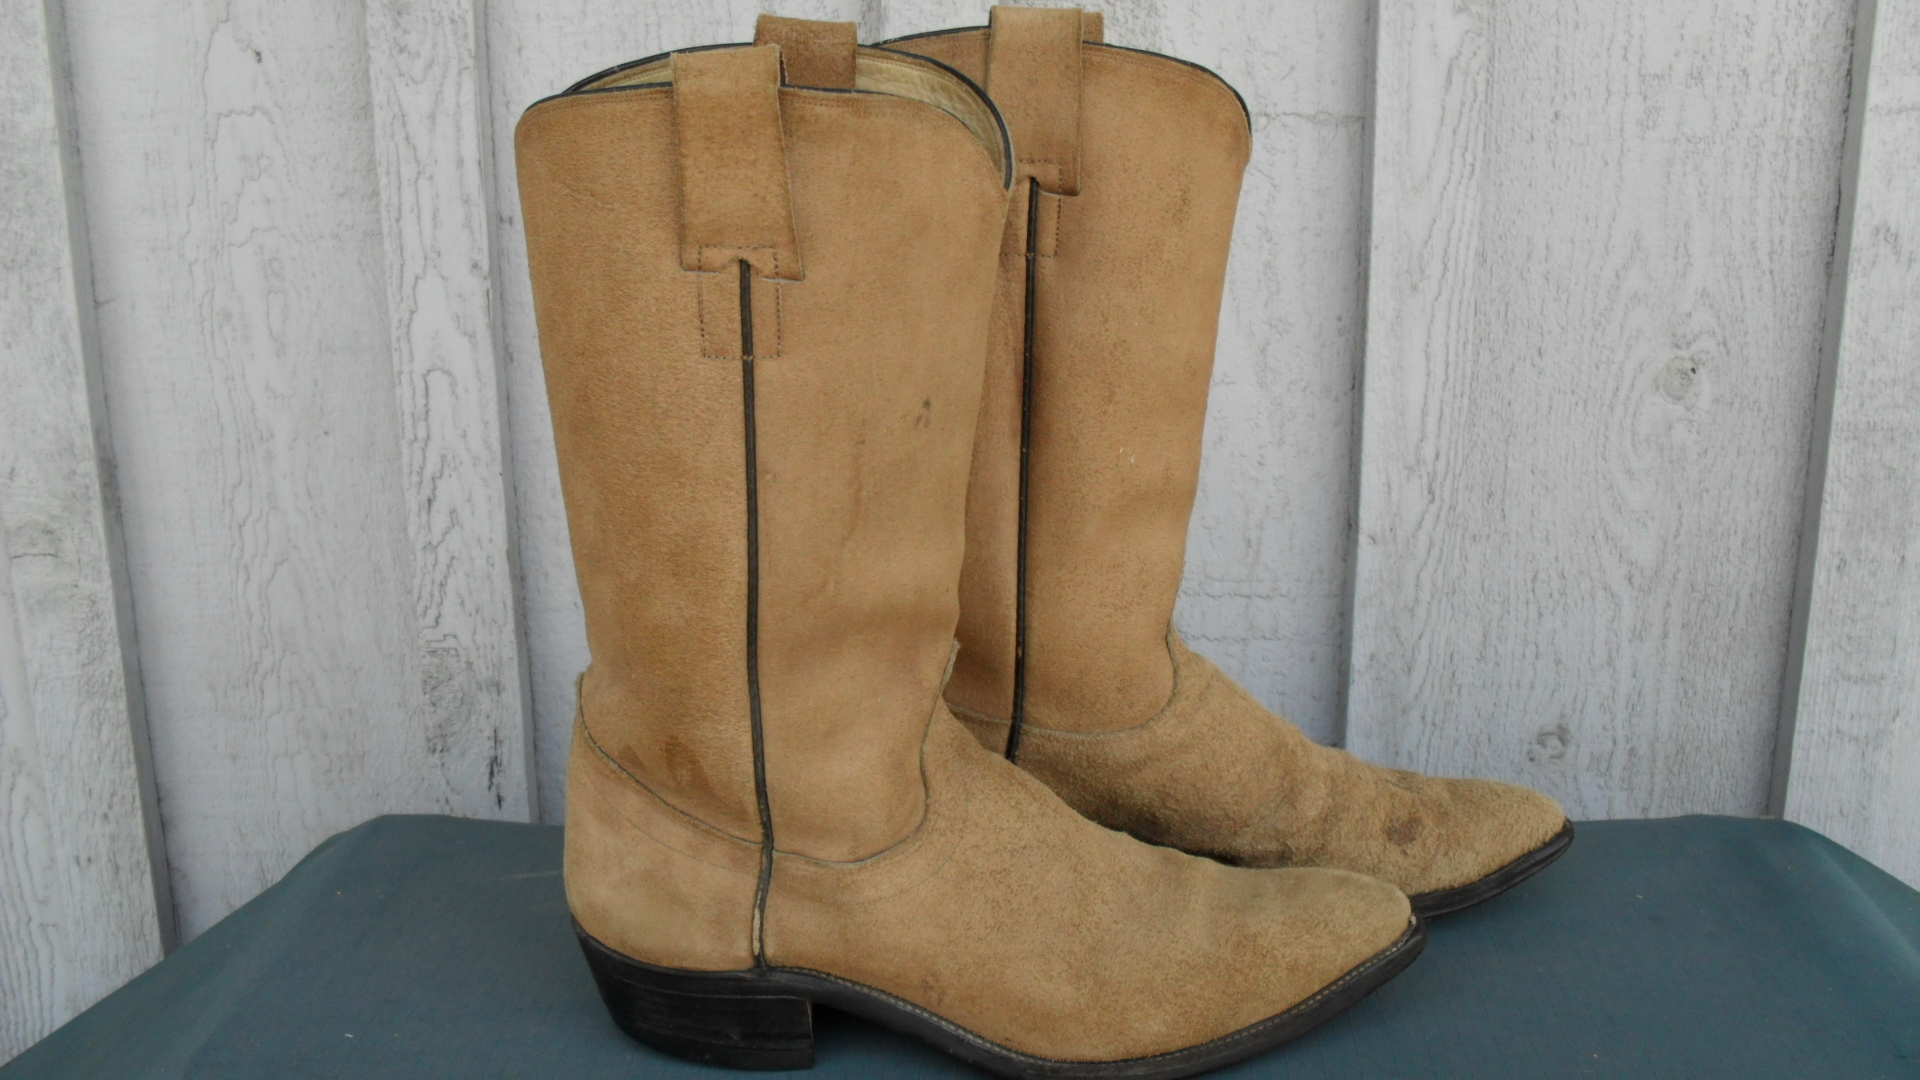 5aa3bb1ed0b Hyer boots that Dierks Bentley would undoubtedly